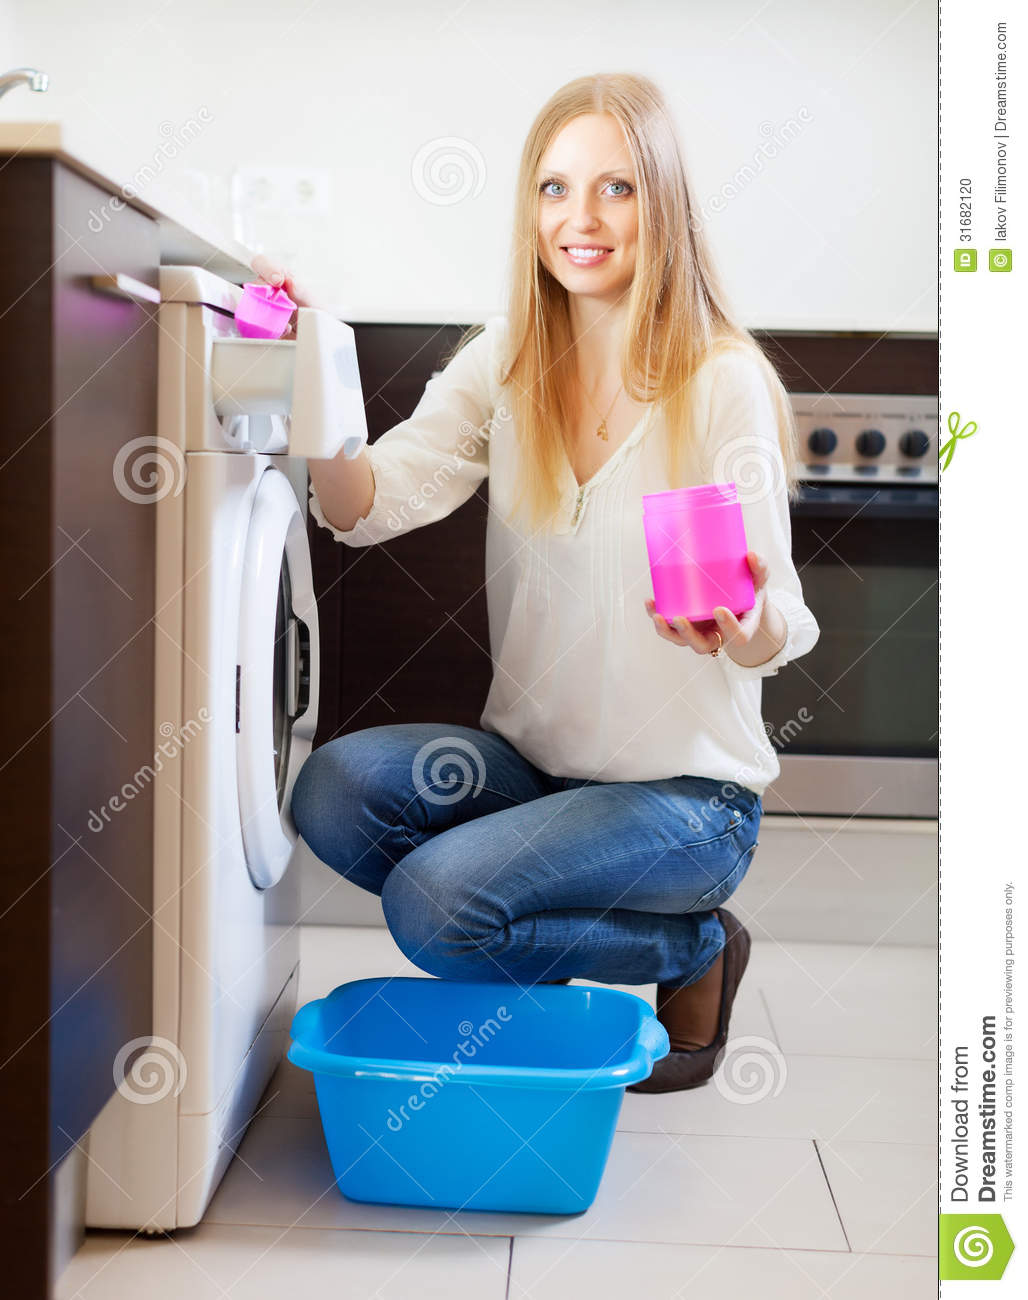 Woman Doing Laundry With Detergent Stock Photo - Image: 31682120